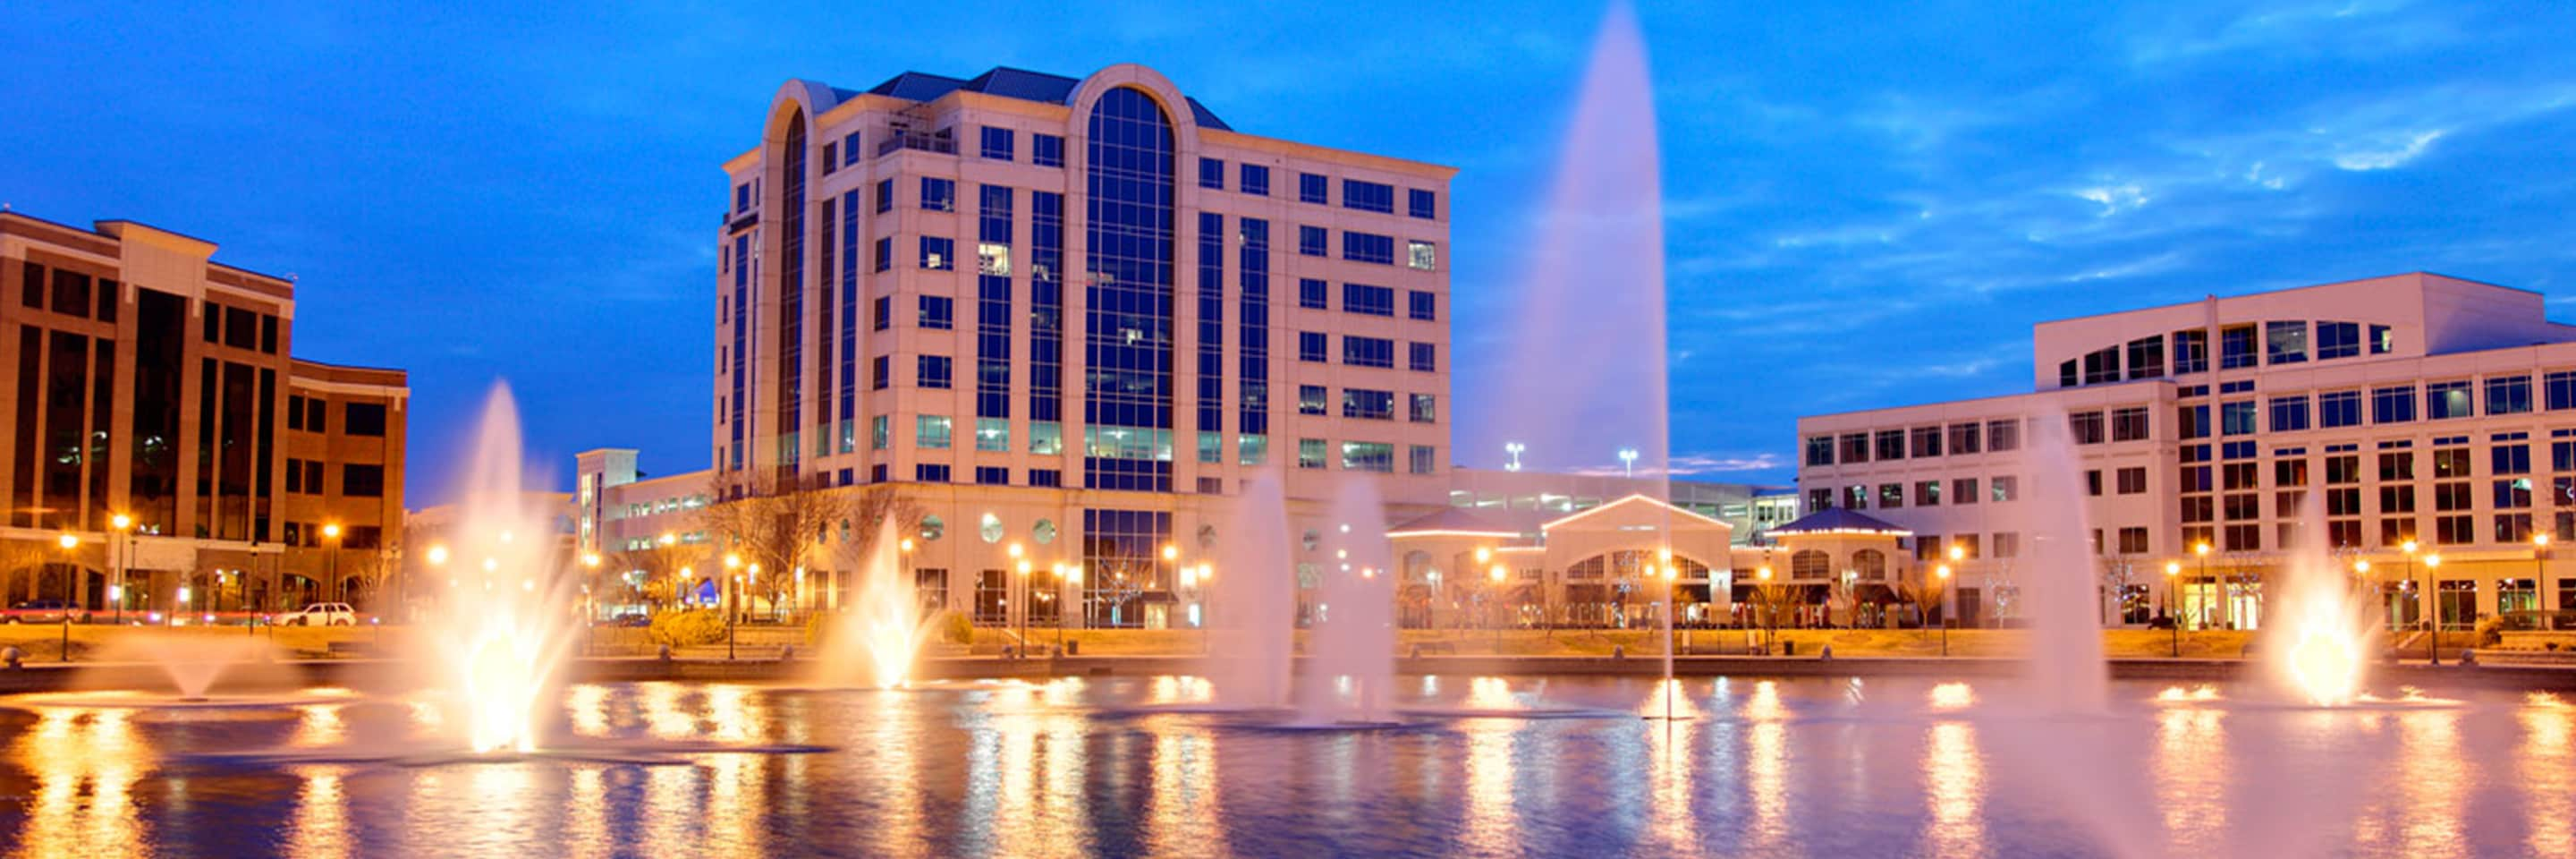 Hotels in Newport News